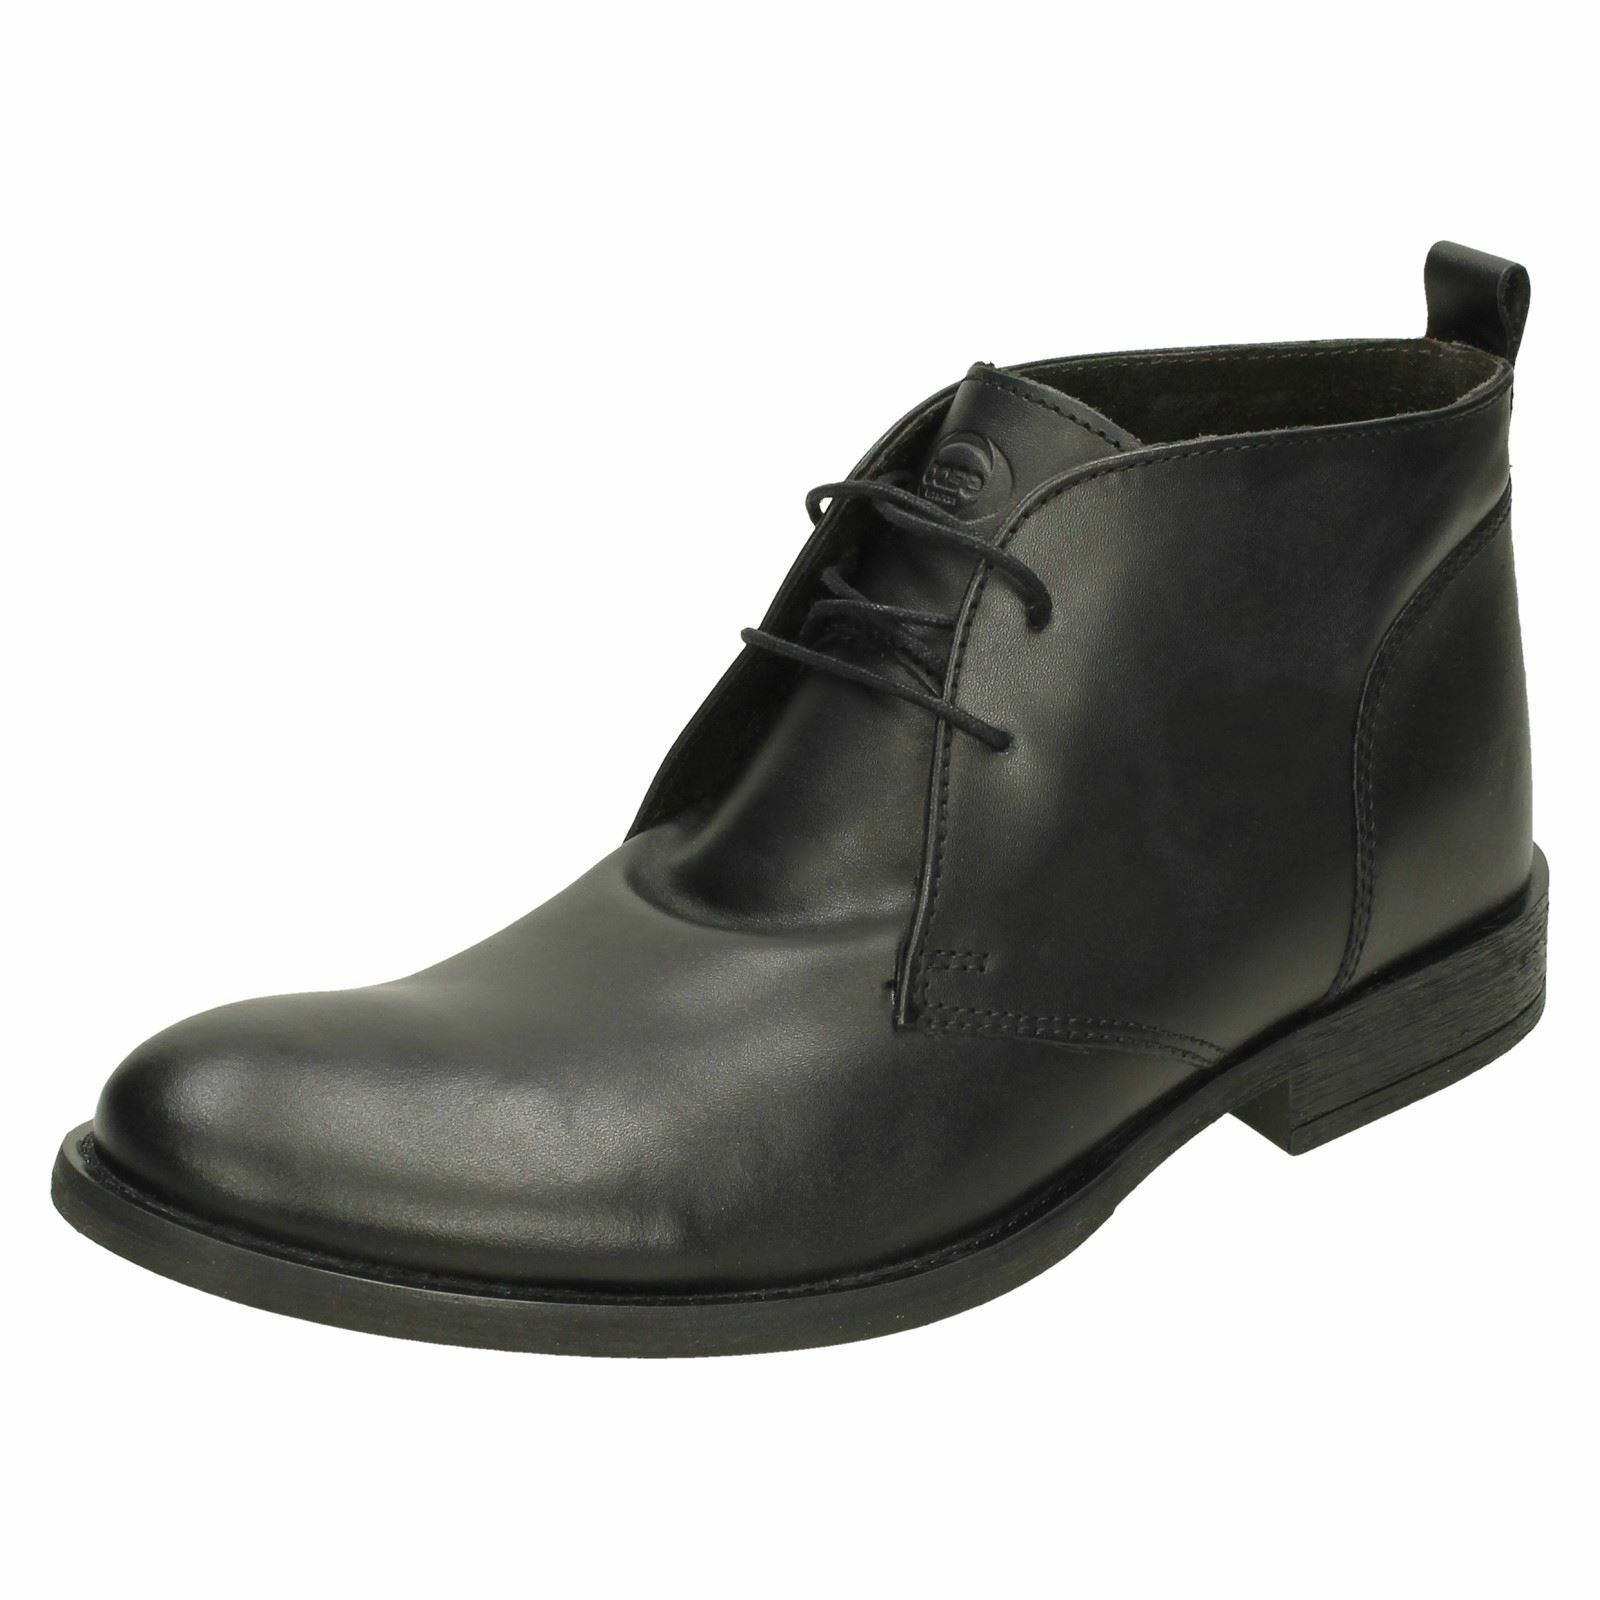 Mens Base London Rounded Toe Formal Smart Smart Smart Lace Up Leather Ankle Stiefel Teak 67e223